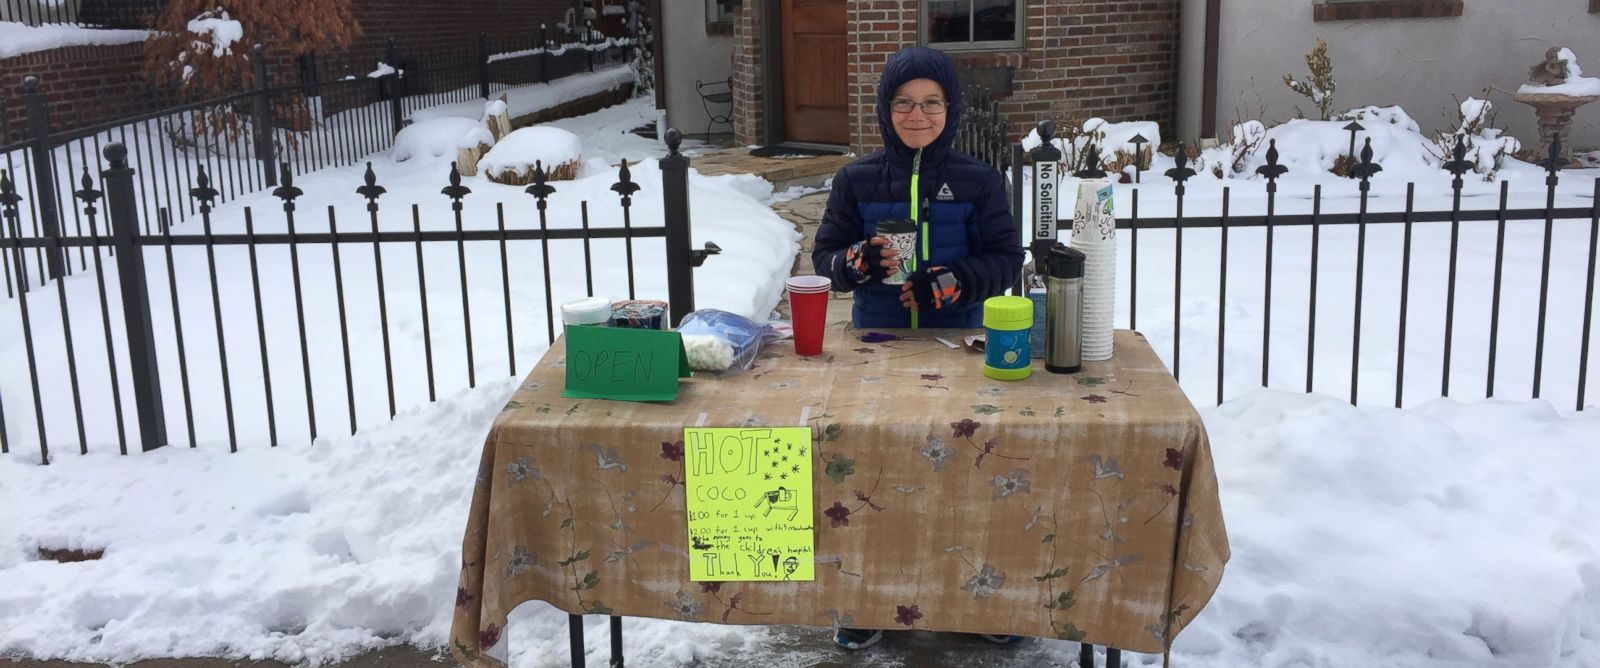 PHOTO: Tristan Regini, 8, opened a hot cocoa stand at his Denver, Colorado, home to raise money for Childrens Hospital Colorado.